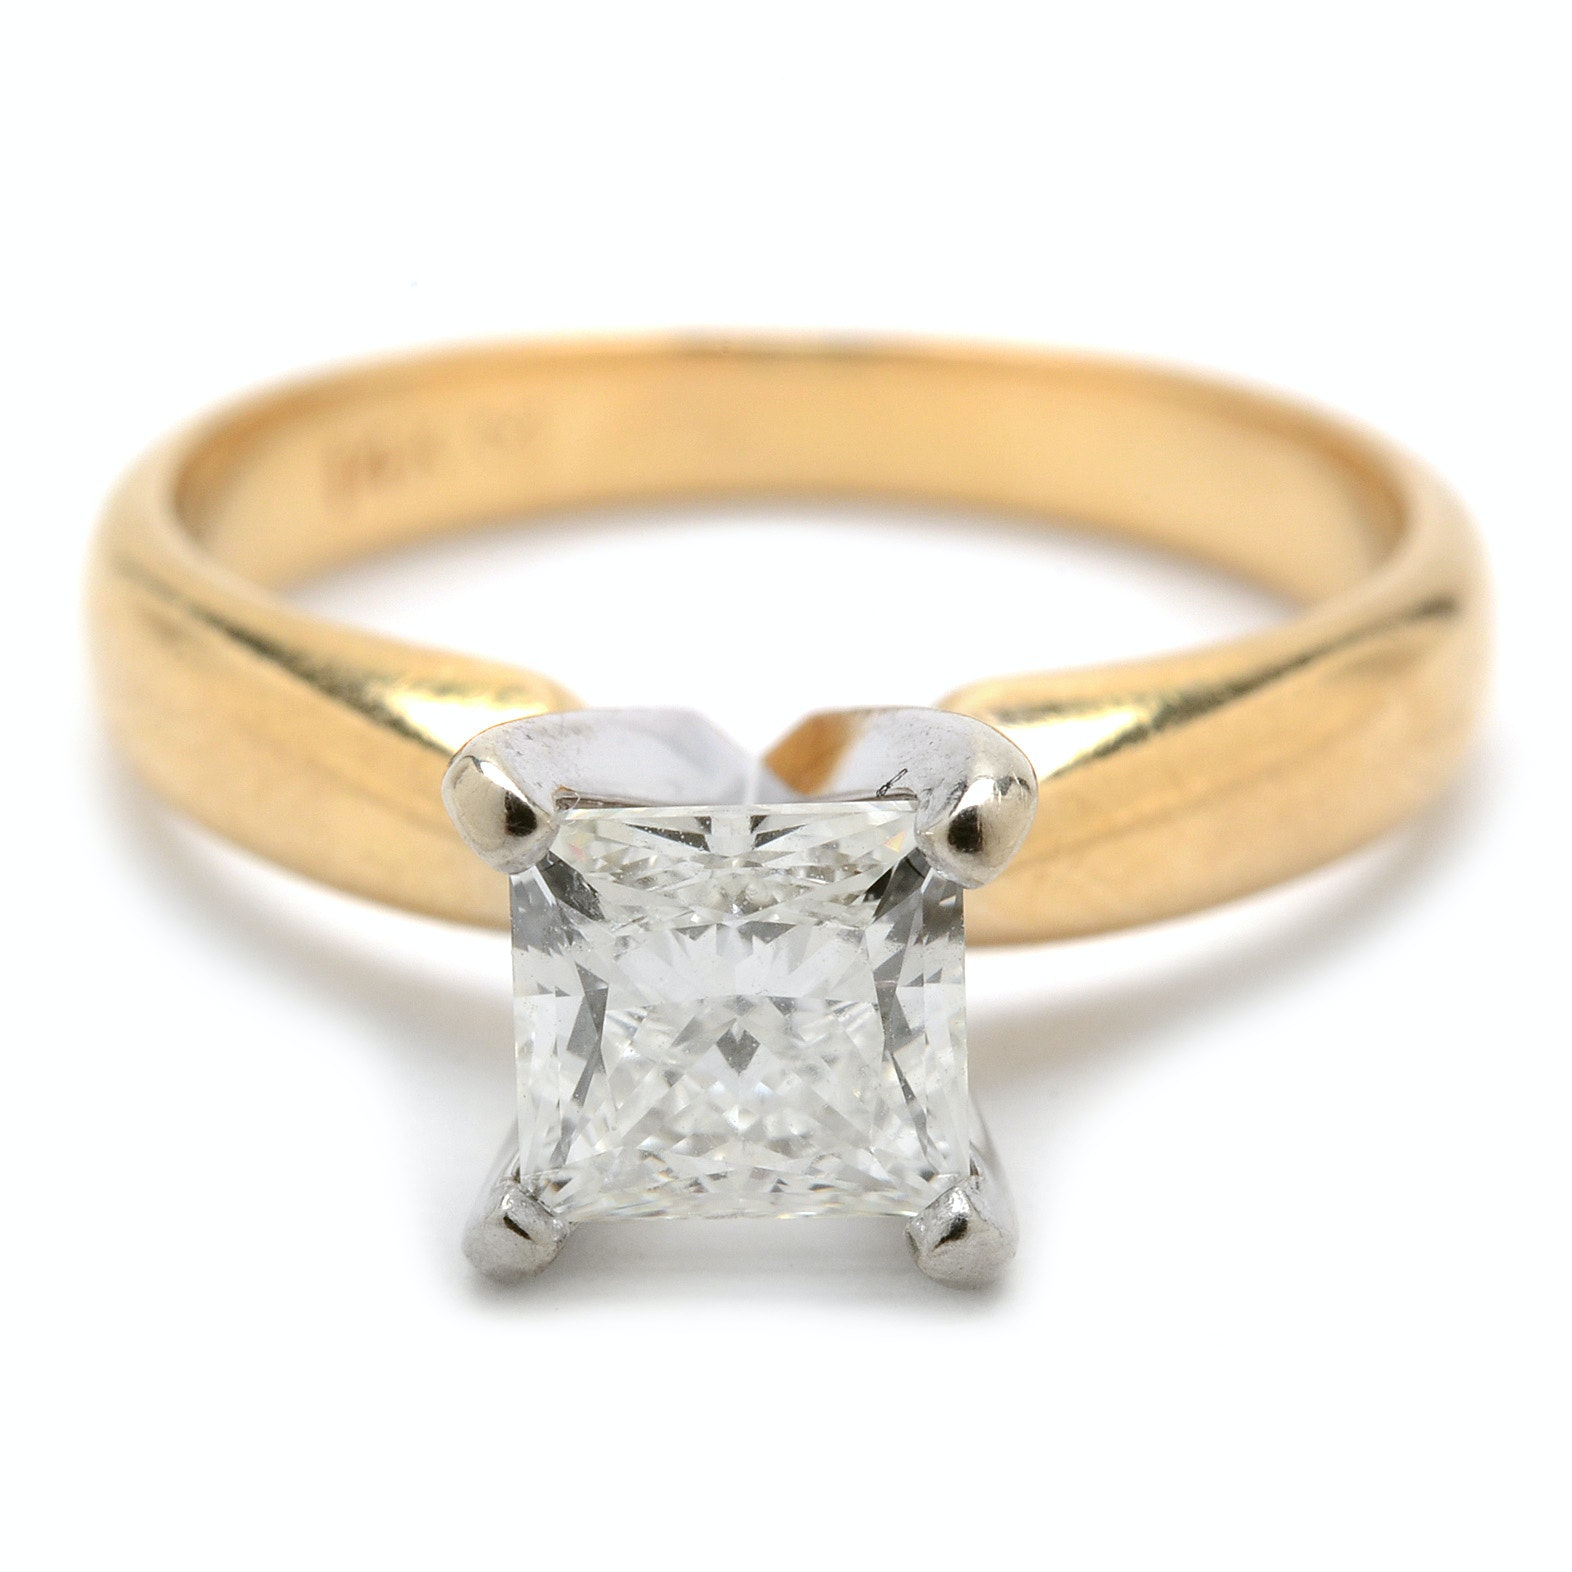 14K Yellow Gold 0.97 Carat Diamond Engagement Ring with GIA Card